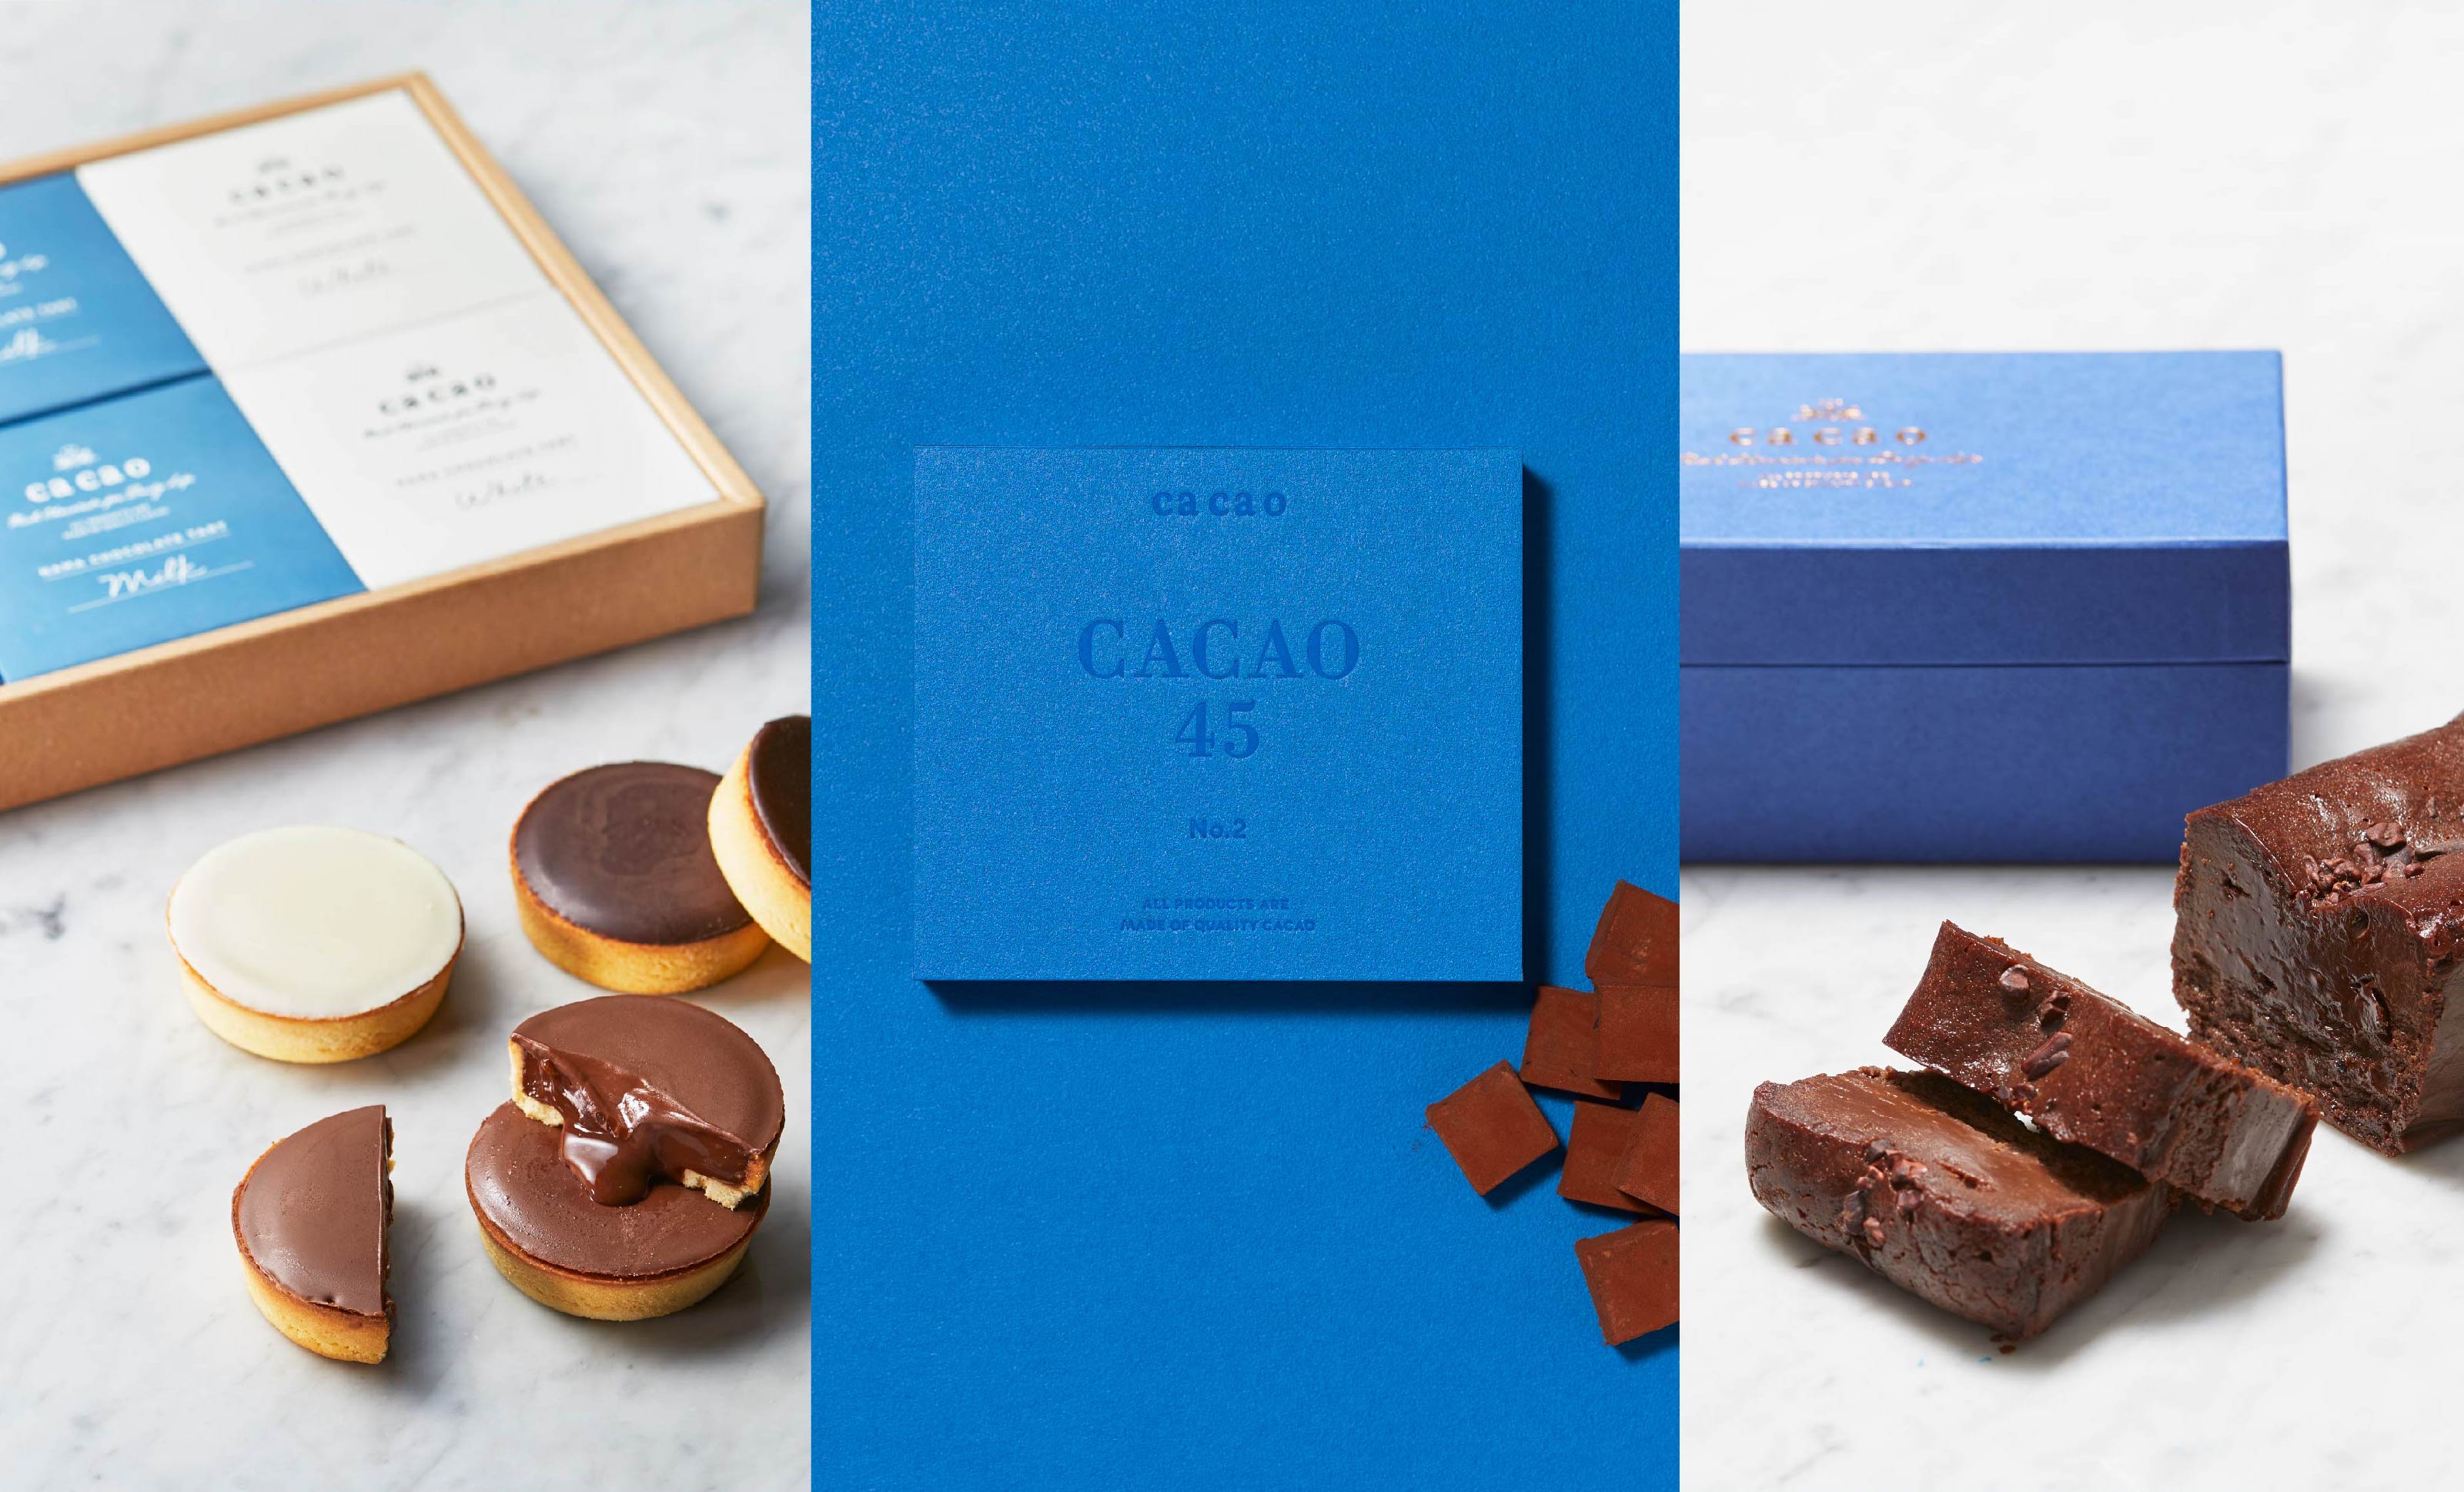 WEB限定cacaoフル贅沢セット(ミルク)